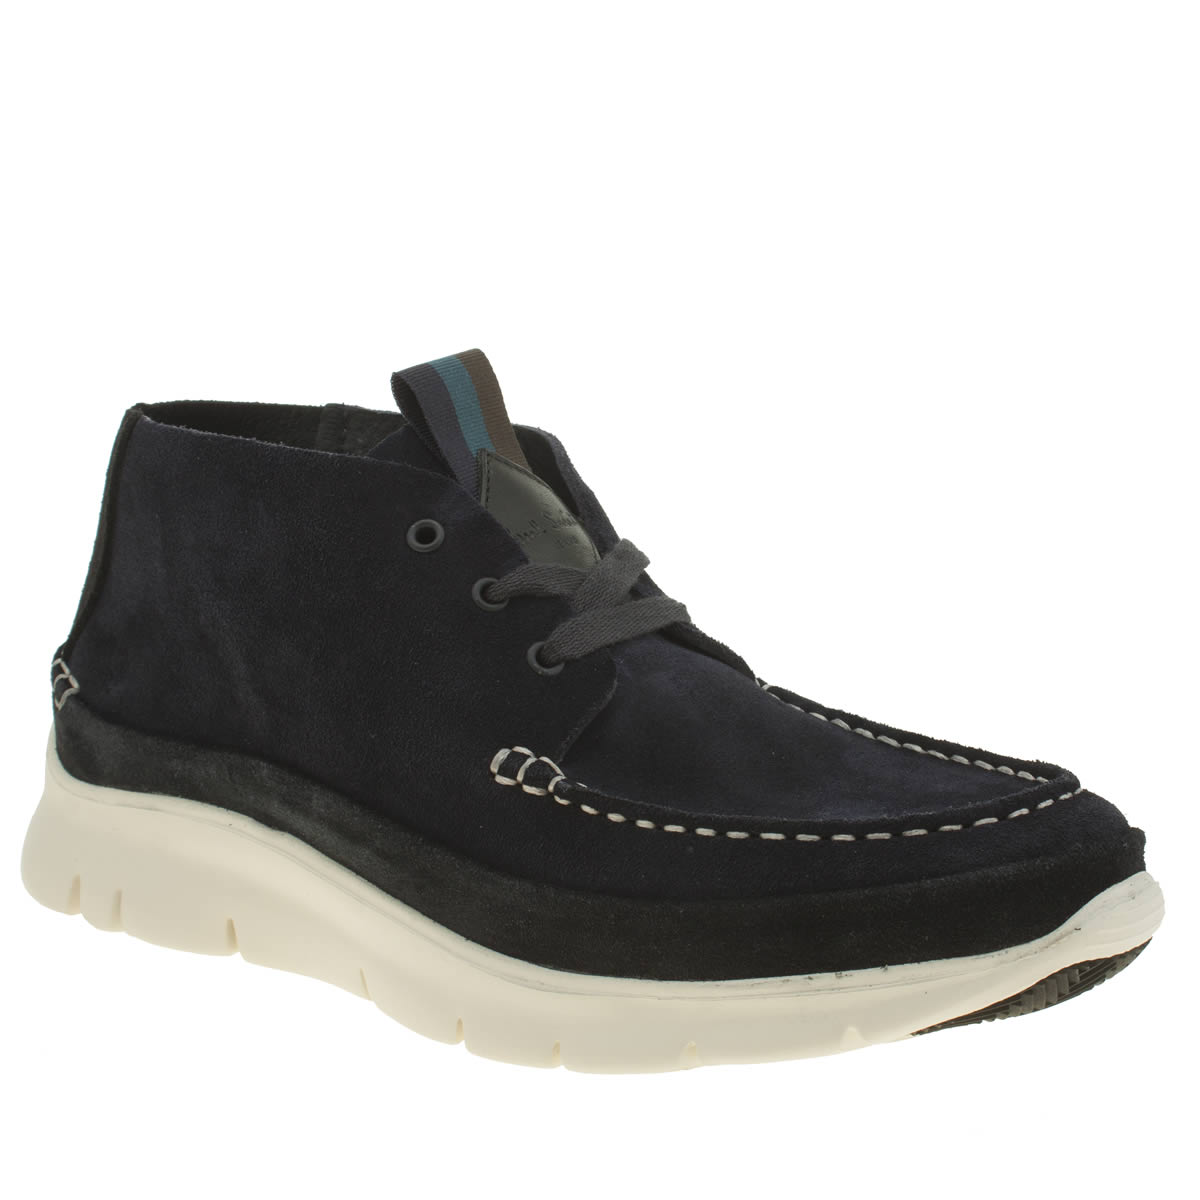 Paul Smith Shoes Paul Smith Shoes Navy & Black Stereo Mens Trainers